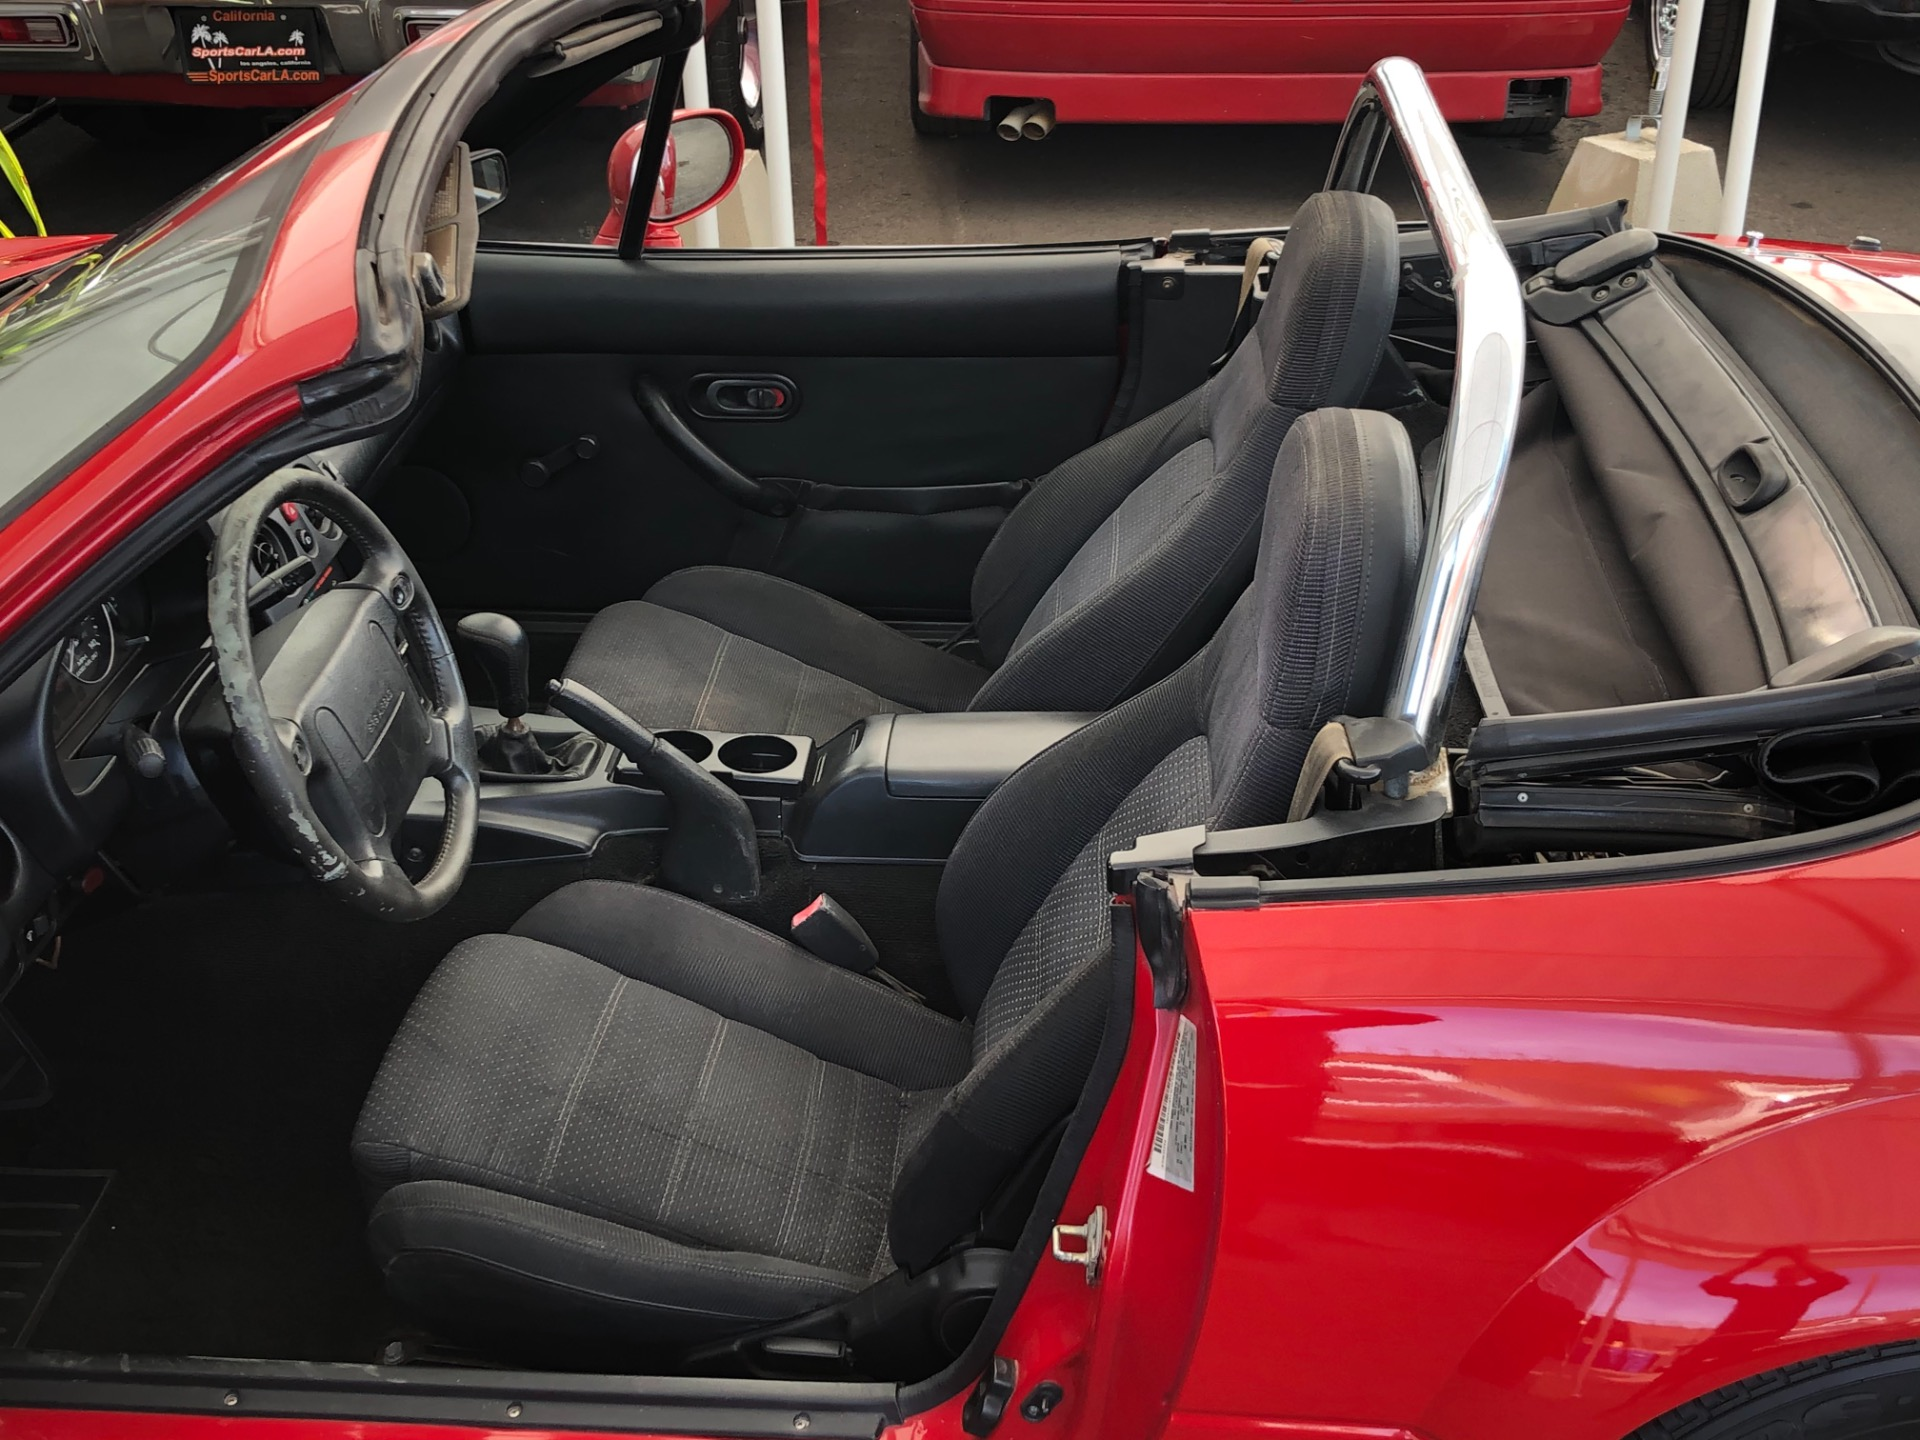 Used 1994 MAZDA MIATA M Edition